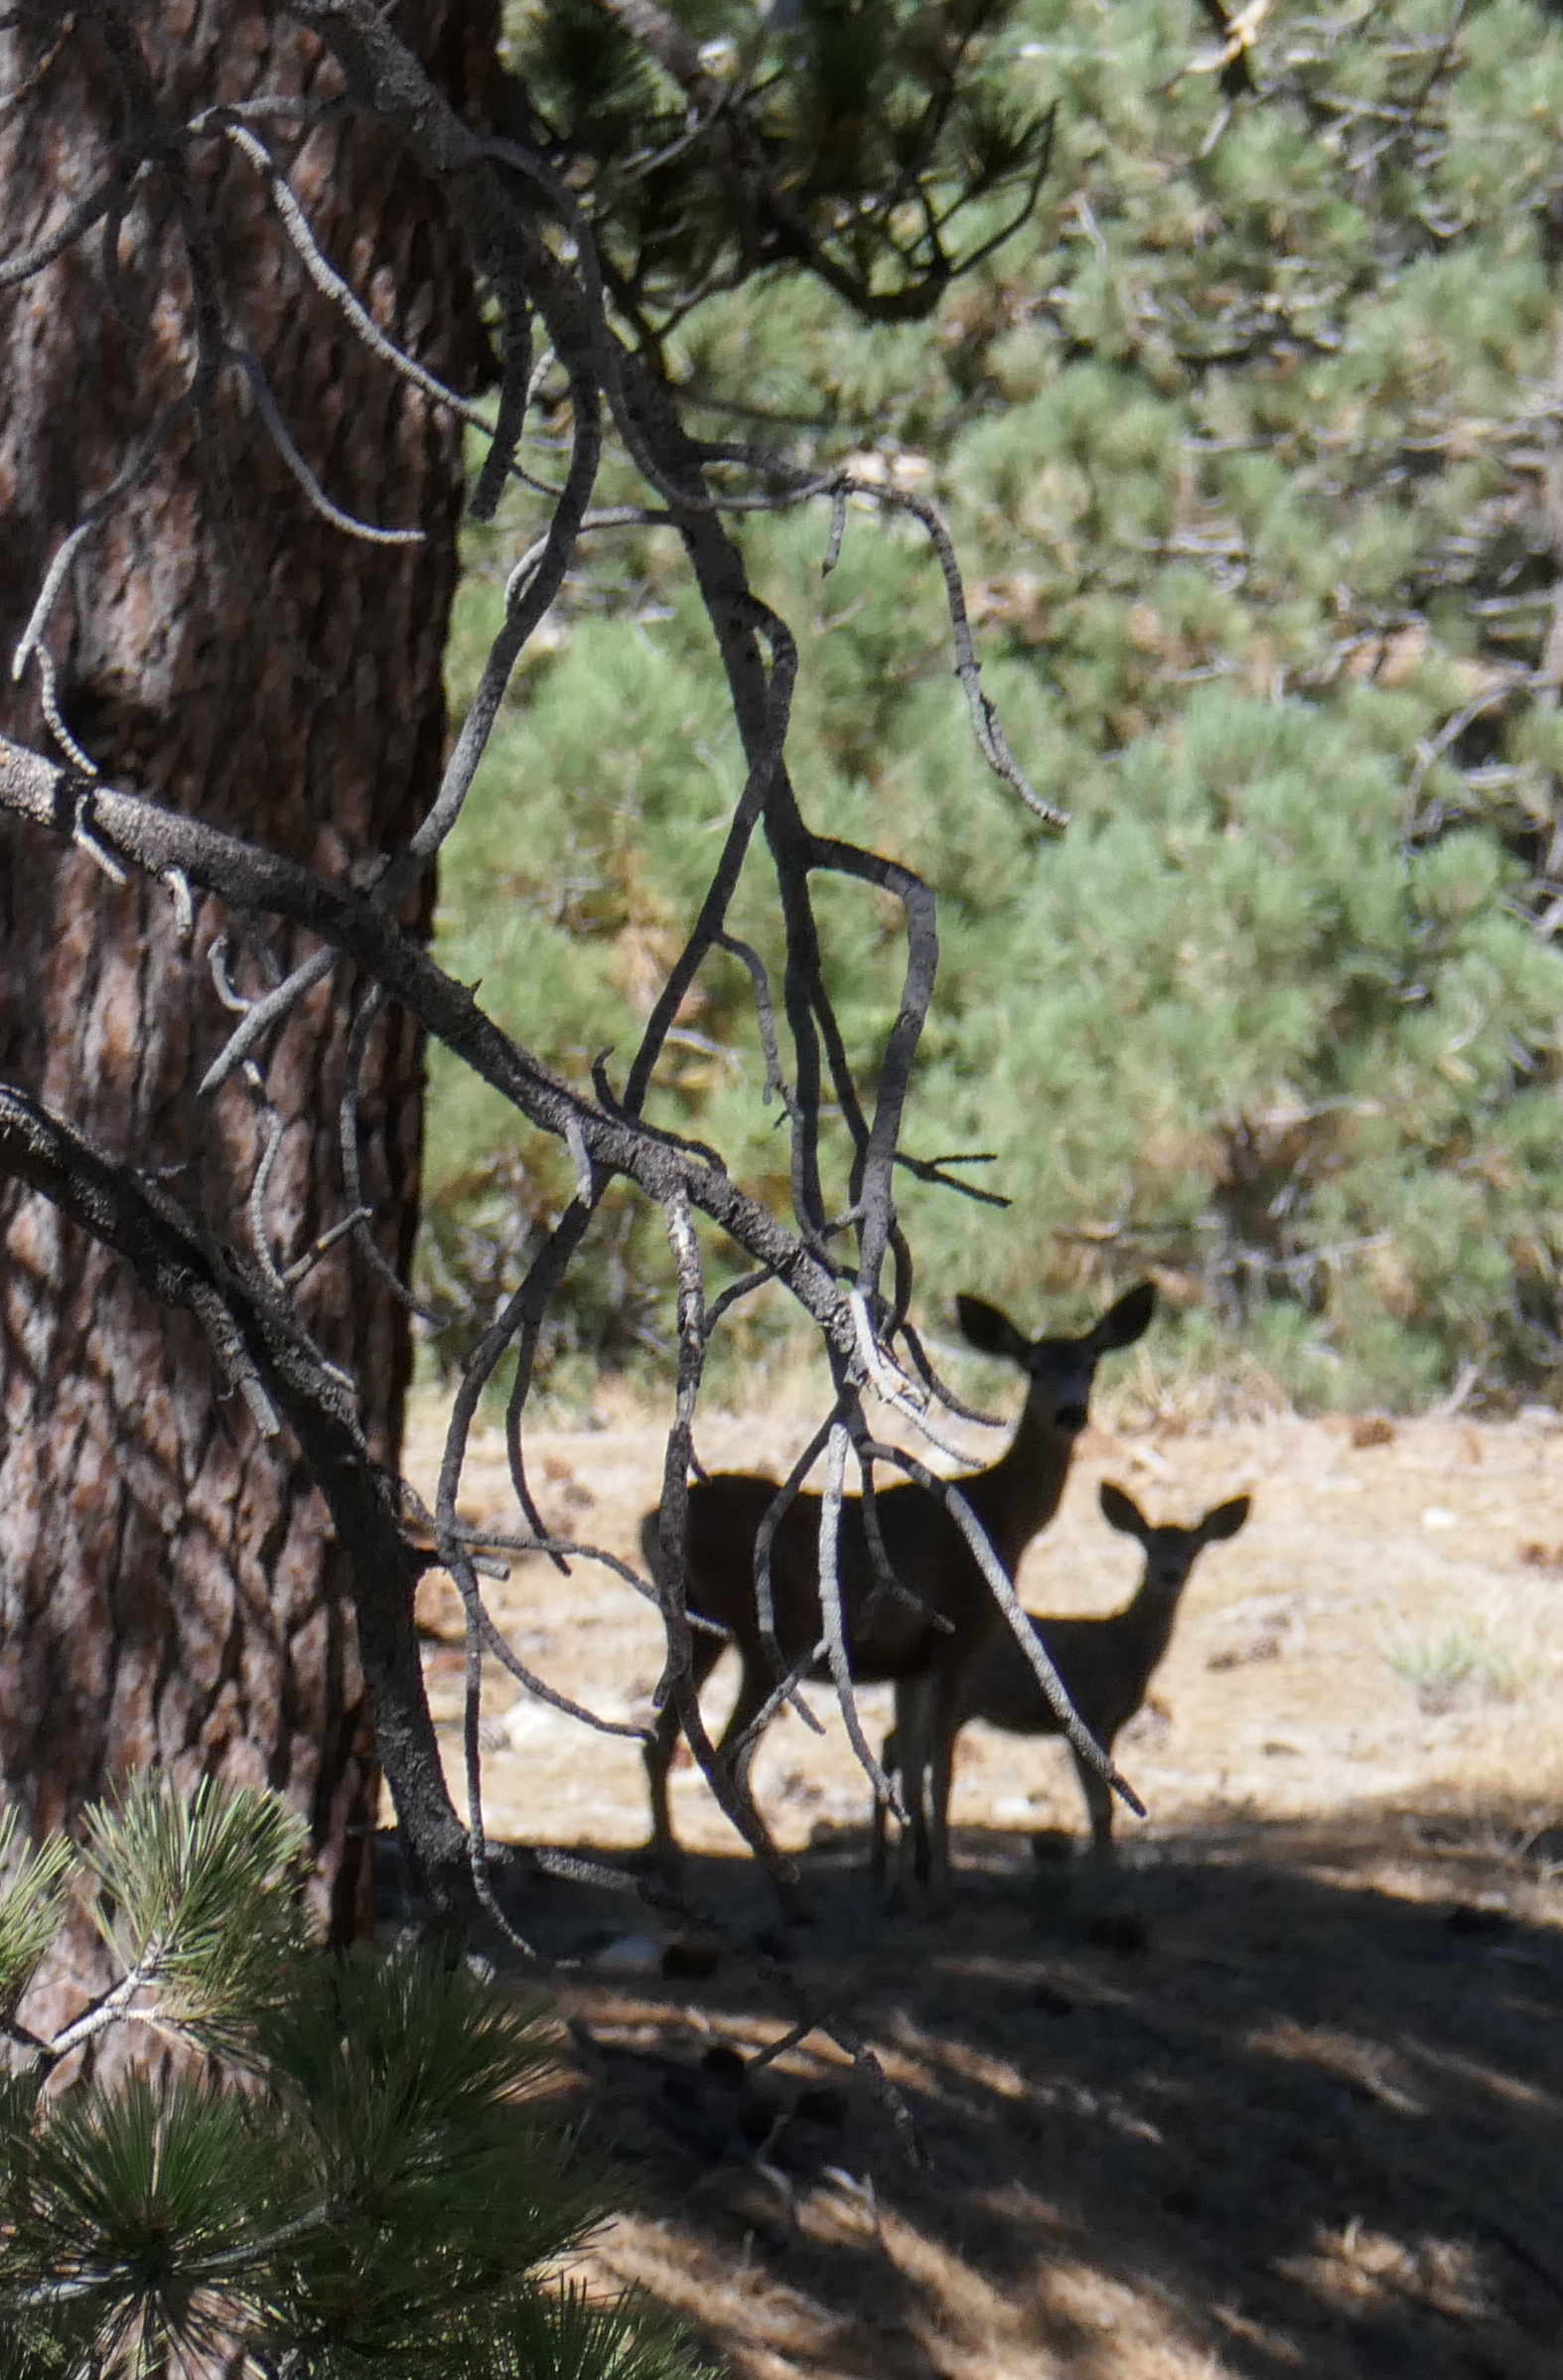 We saw a lot of deer today; five of them as we were hiking, and here we come across a doe and her fawn looking cautiously at us humans.